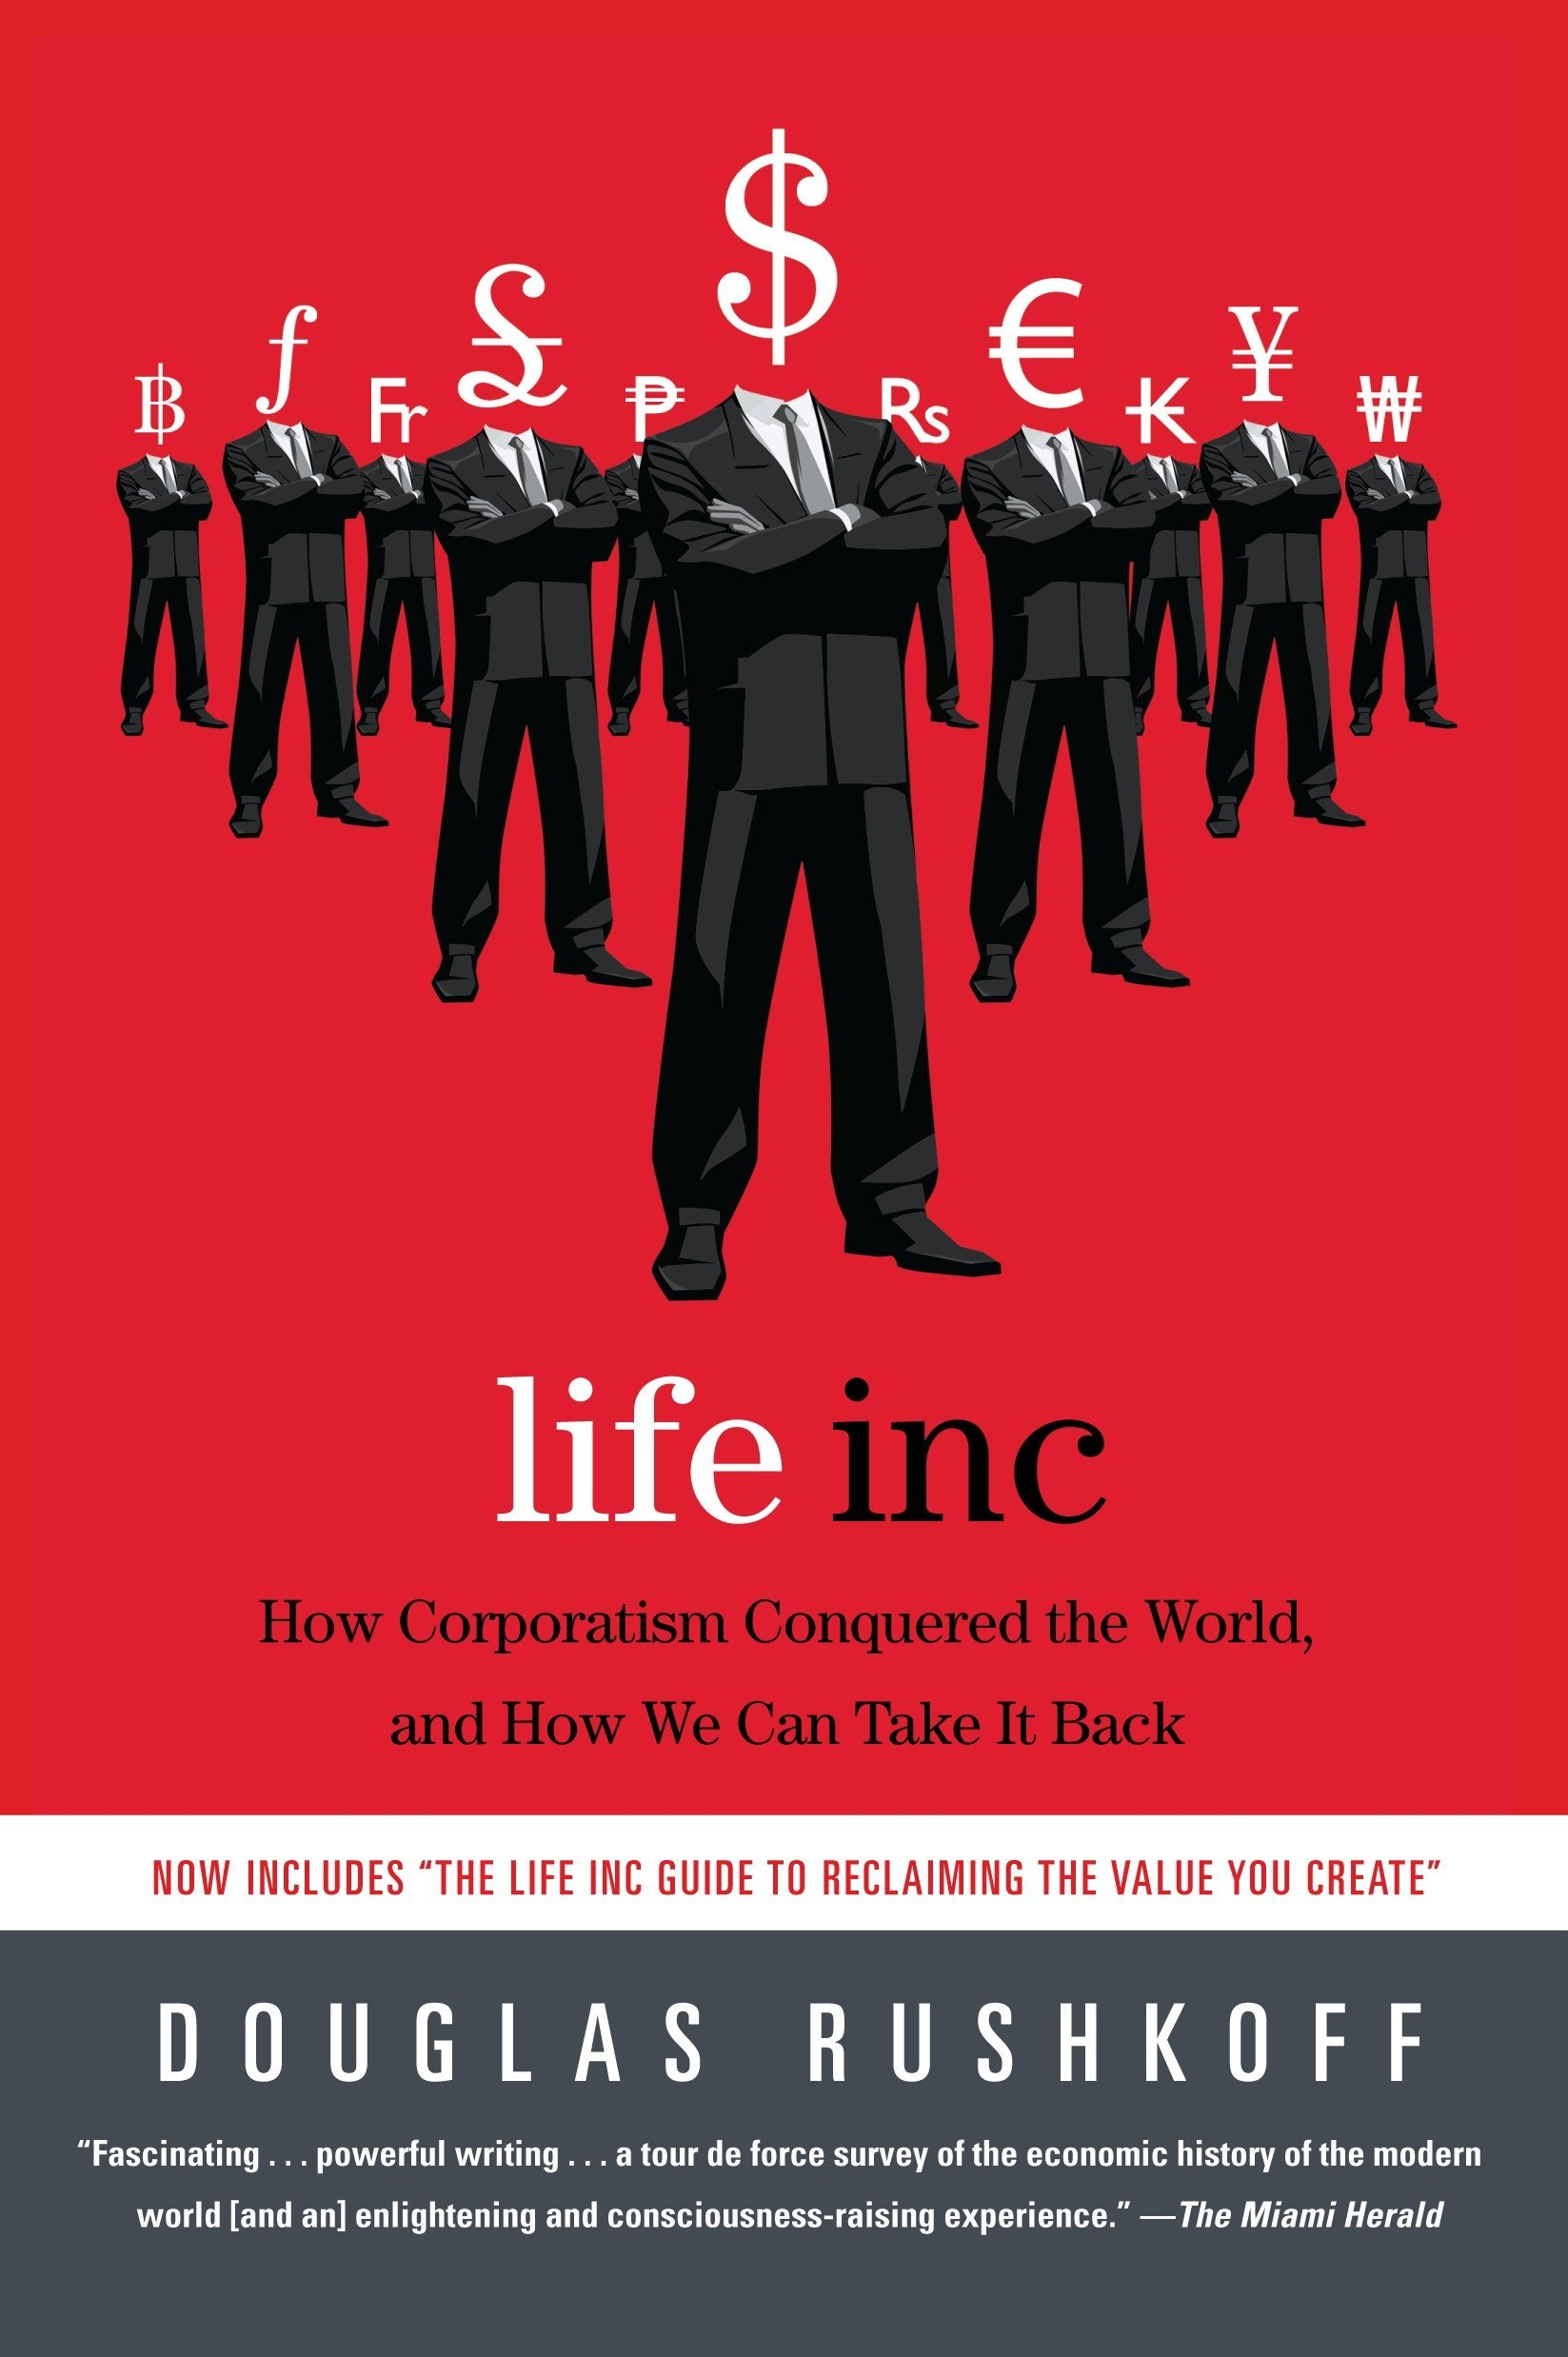 Life Inc: How Corporatism Conquered the World, and How We Can Take It Back: Amazon.es: Rushkoff, Douglas: Libros en idiomas extranjeros